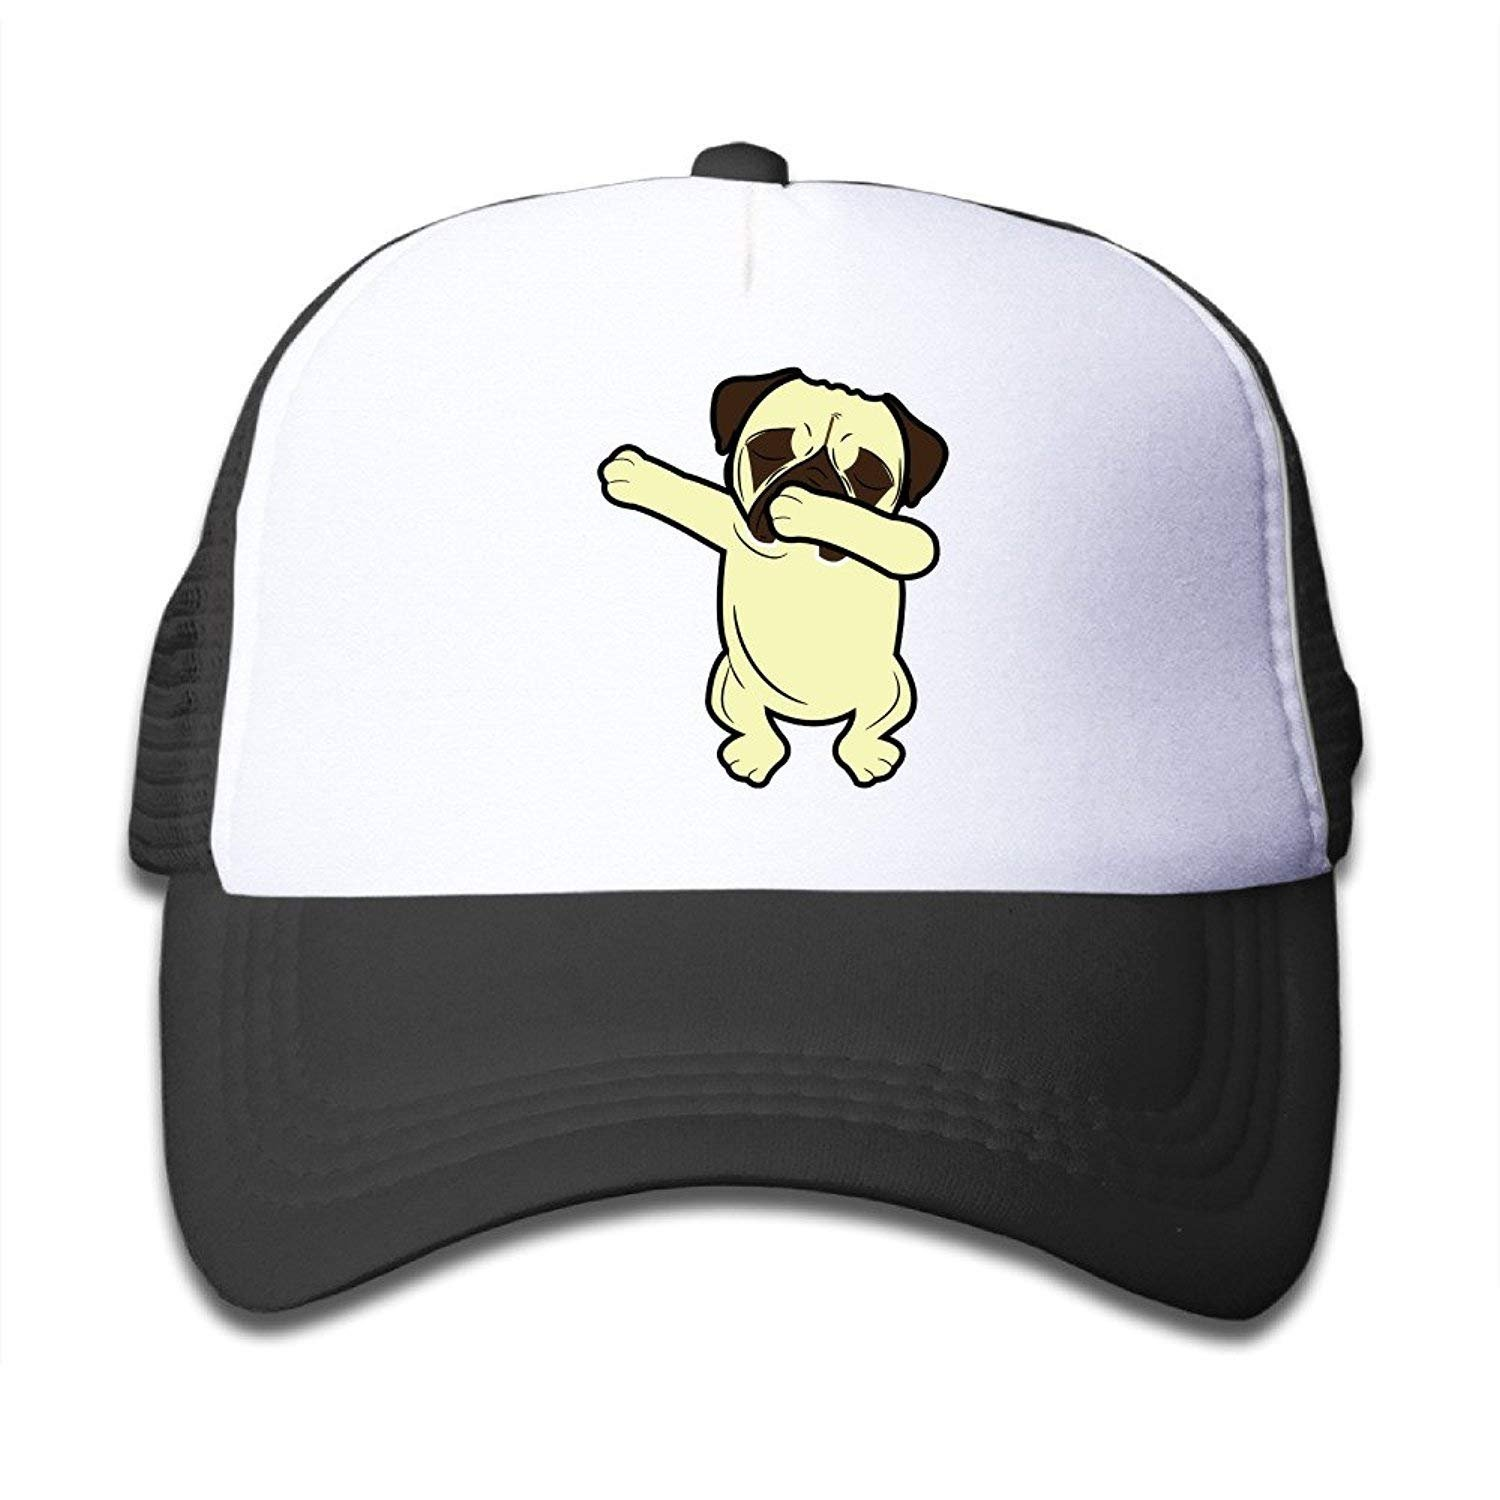 Amazon.com  Waldeal Funny Dabbing Pug Cute Dabbing Dog Kids Mesh Cap  Baseball Hat Cap Adjustable Black  Clothing e1051643ba0